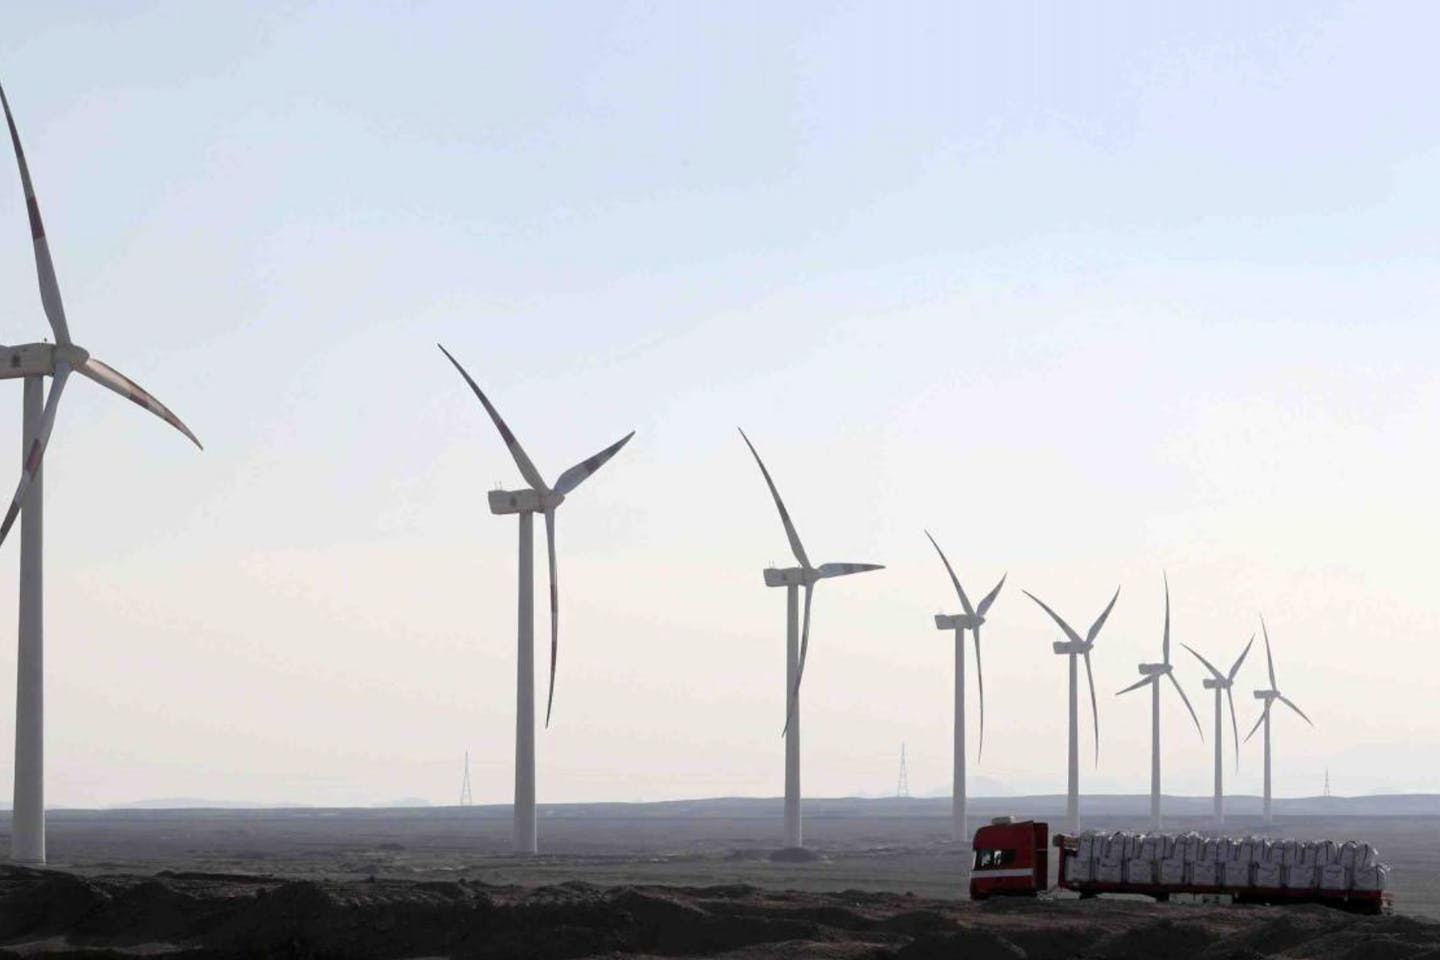 A truck moves past power-generating wind turbines